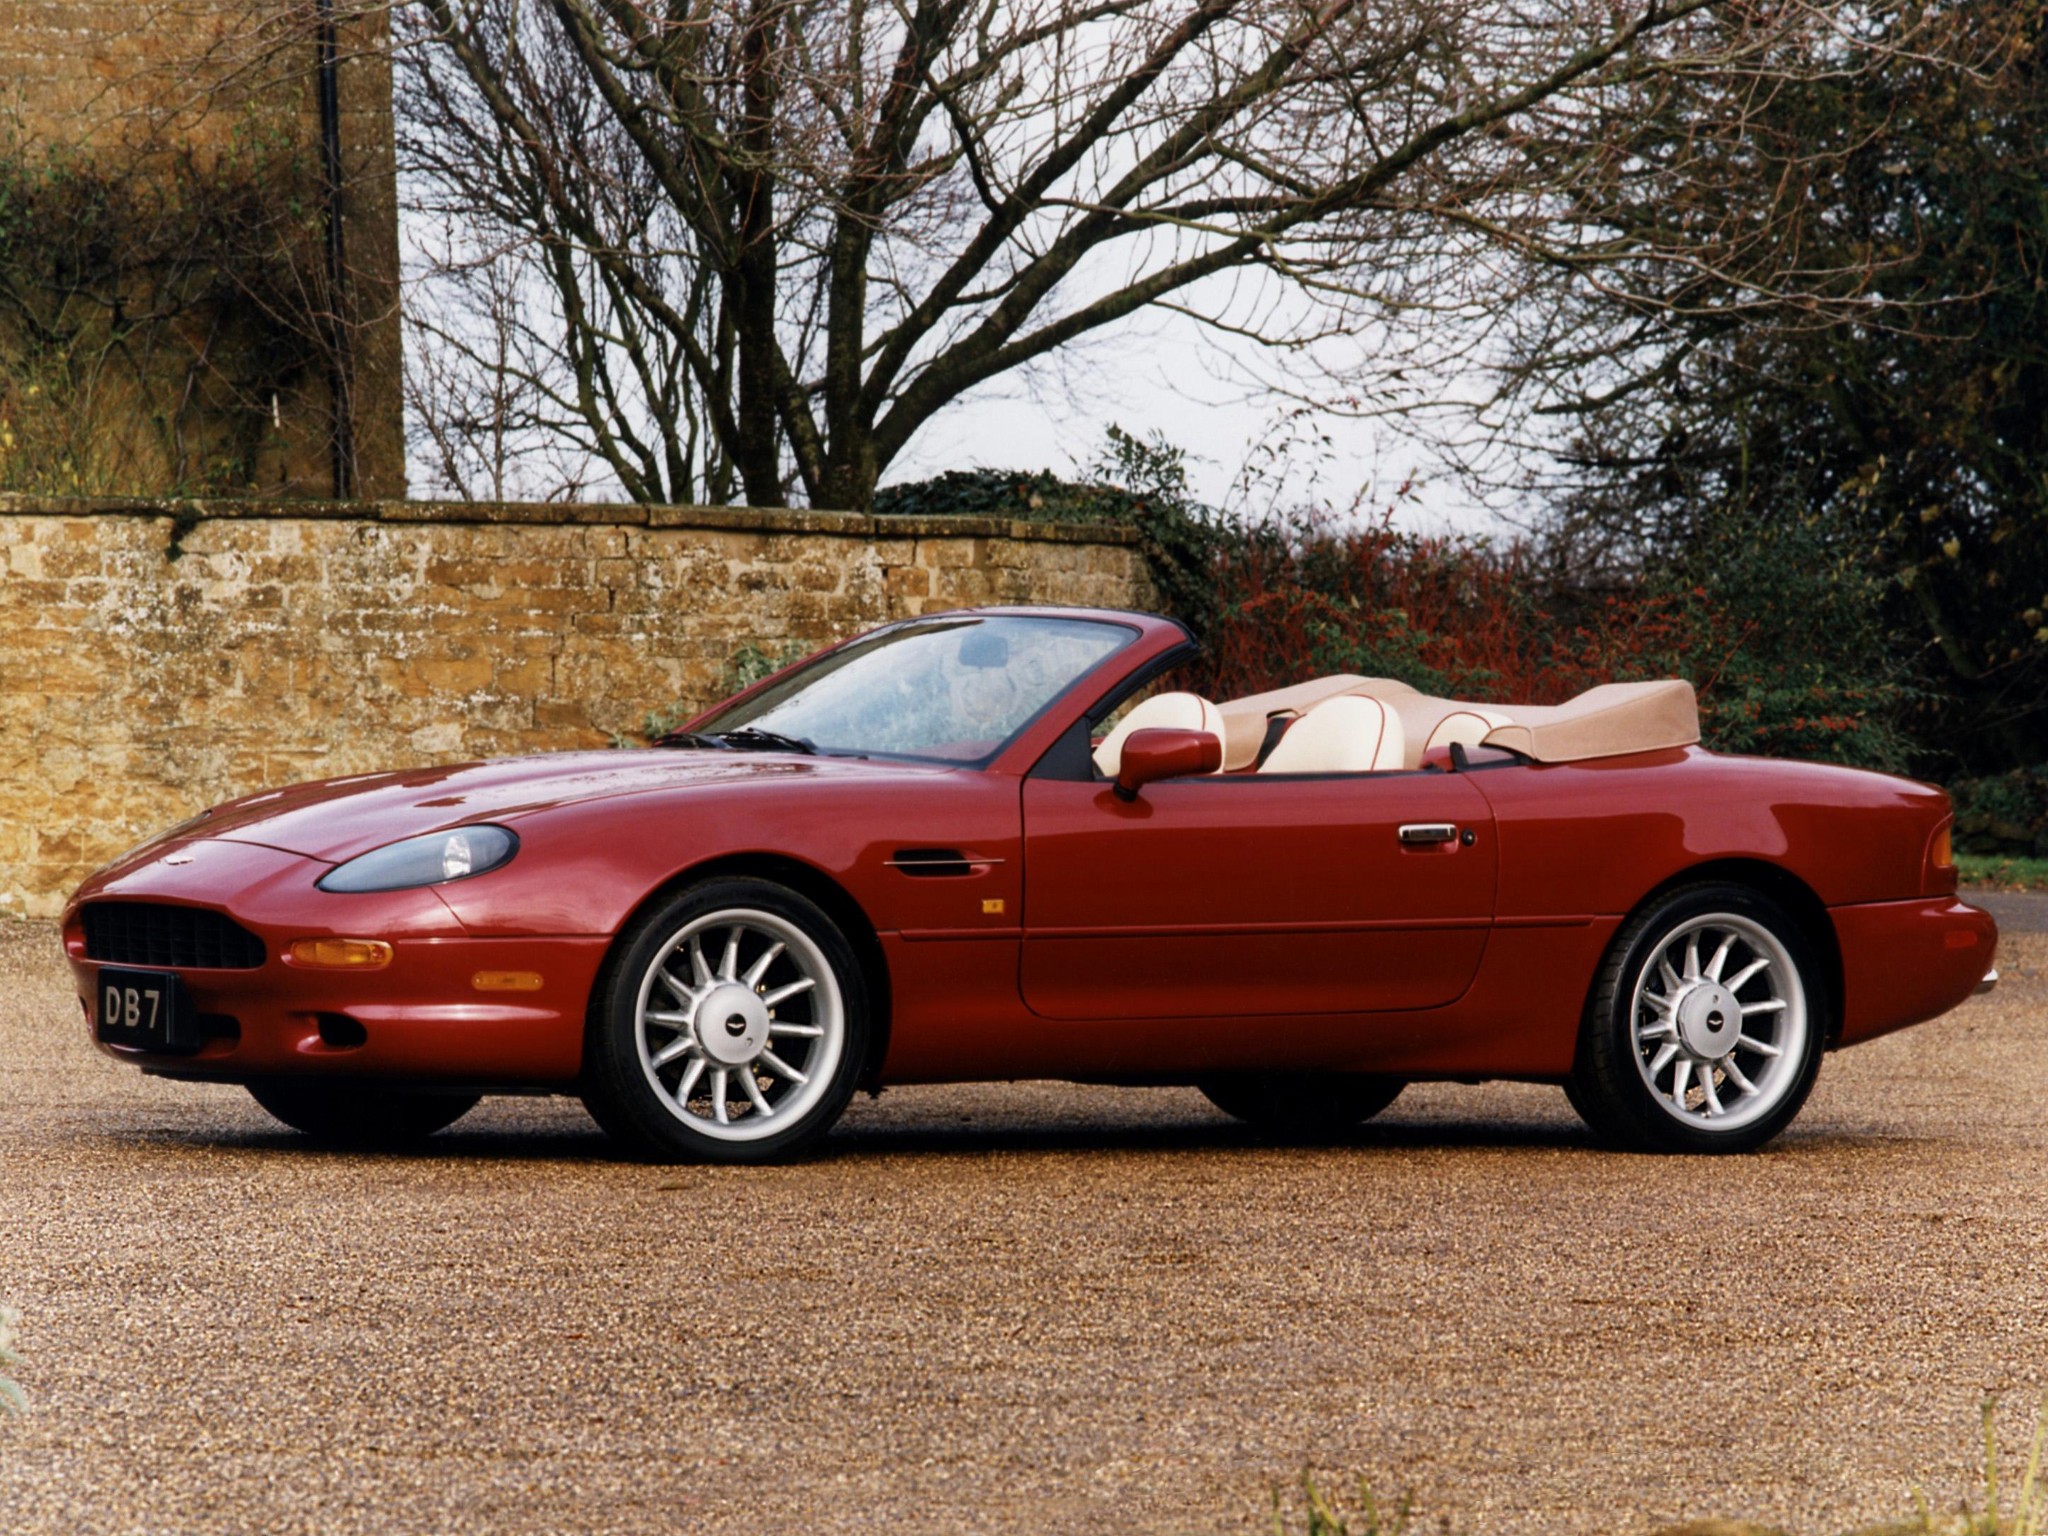 aston martin db7 red